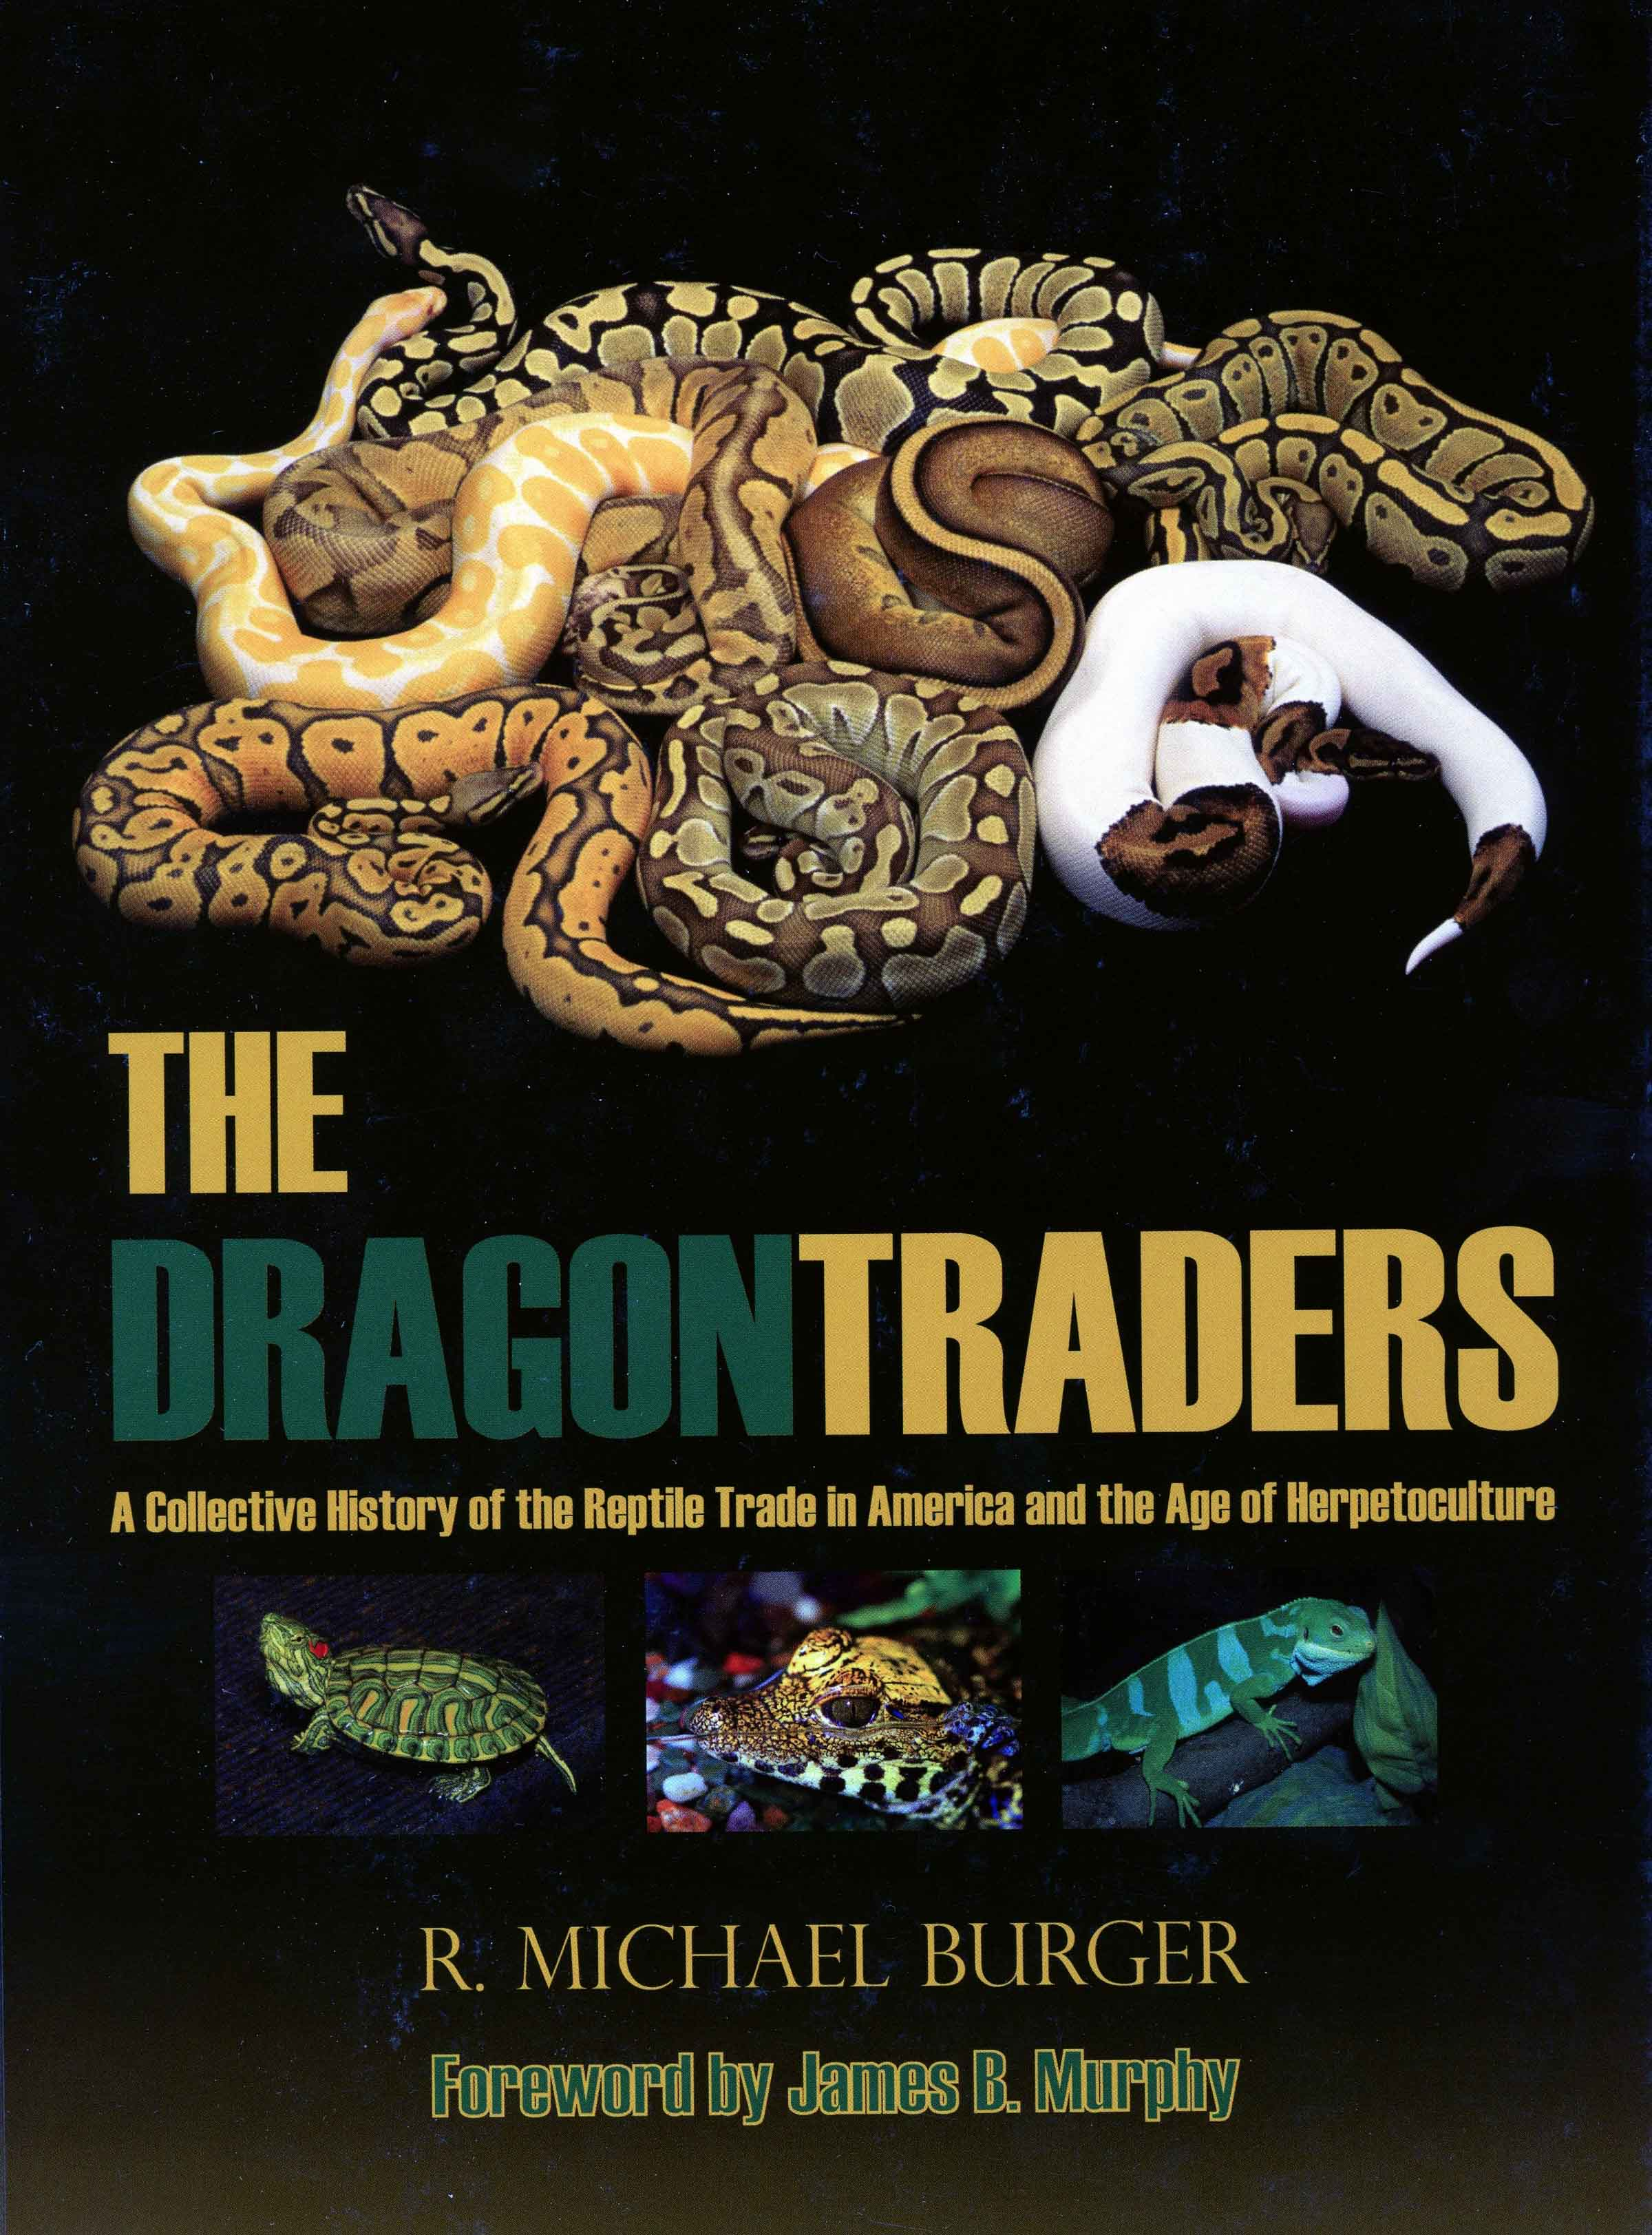 Image for The Dragon Traders: A Collective History of the Reptile Trade in America and the Age of Herpetoculture,